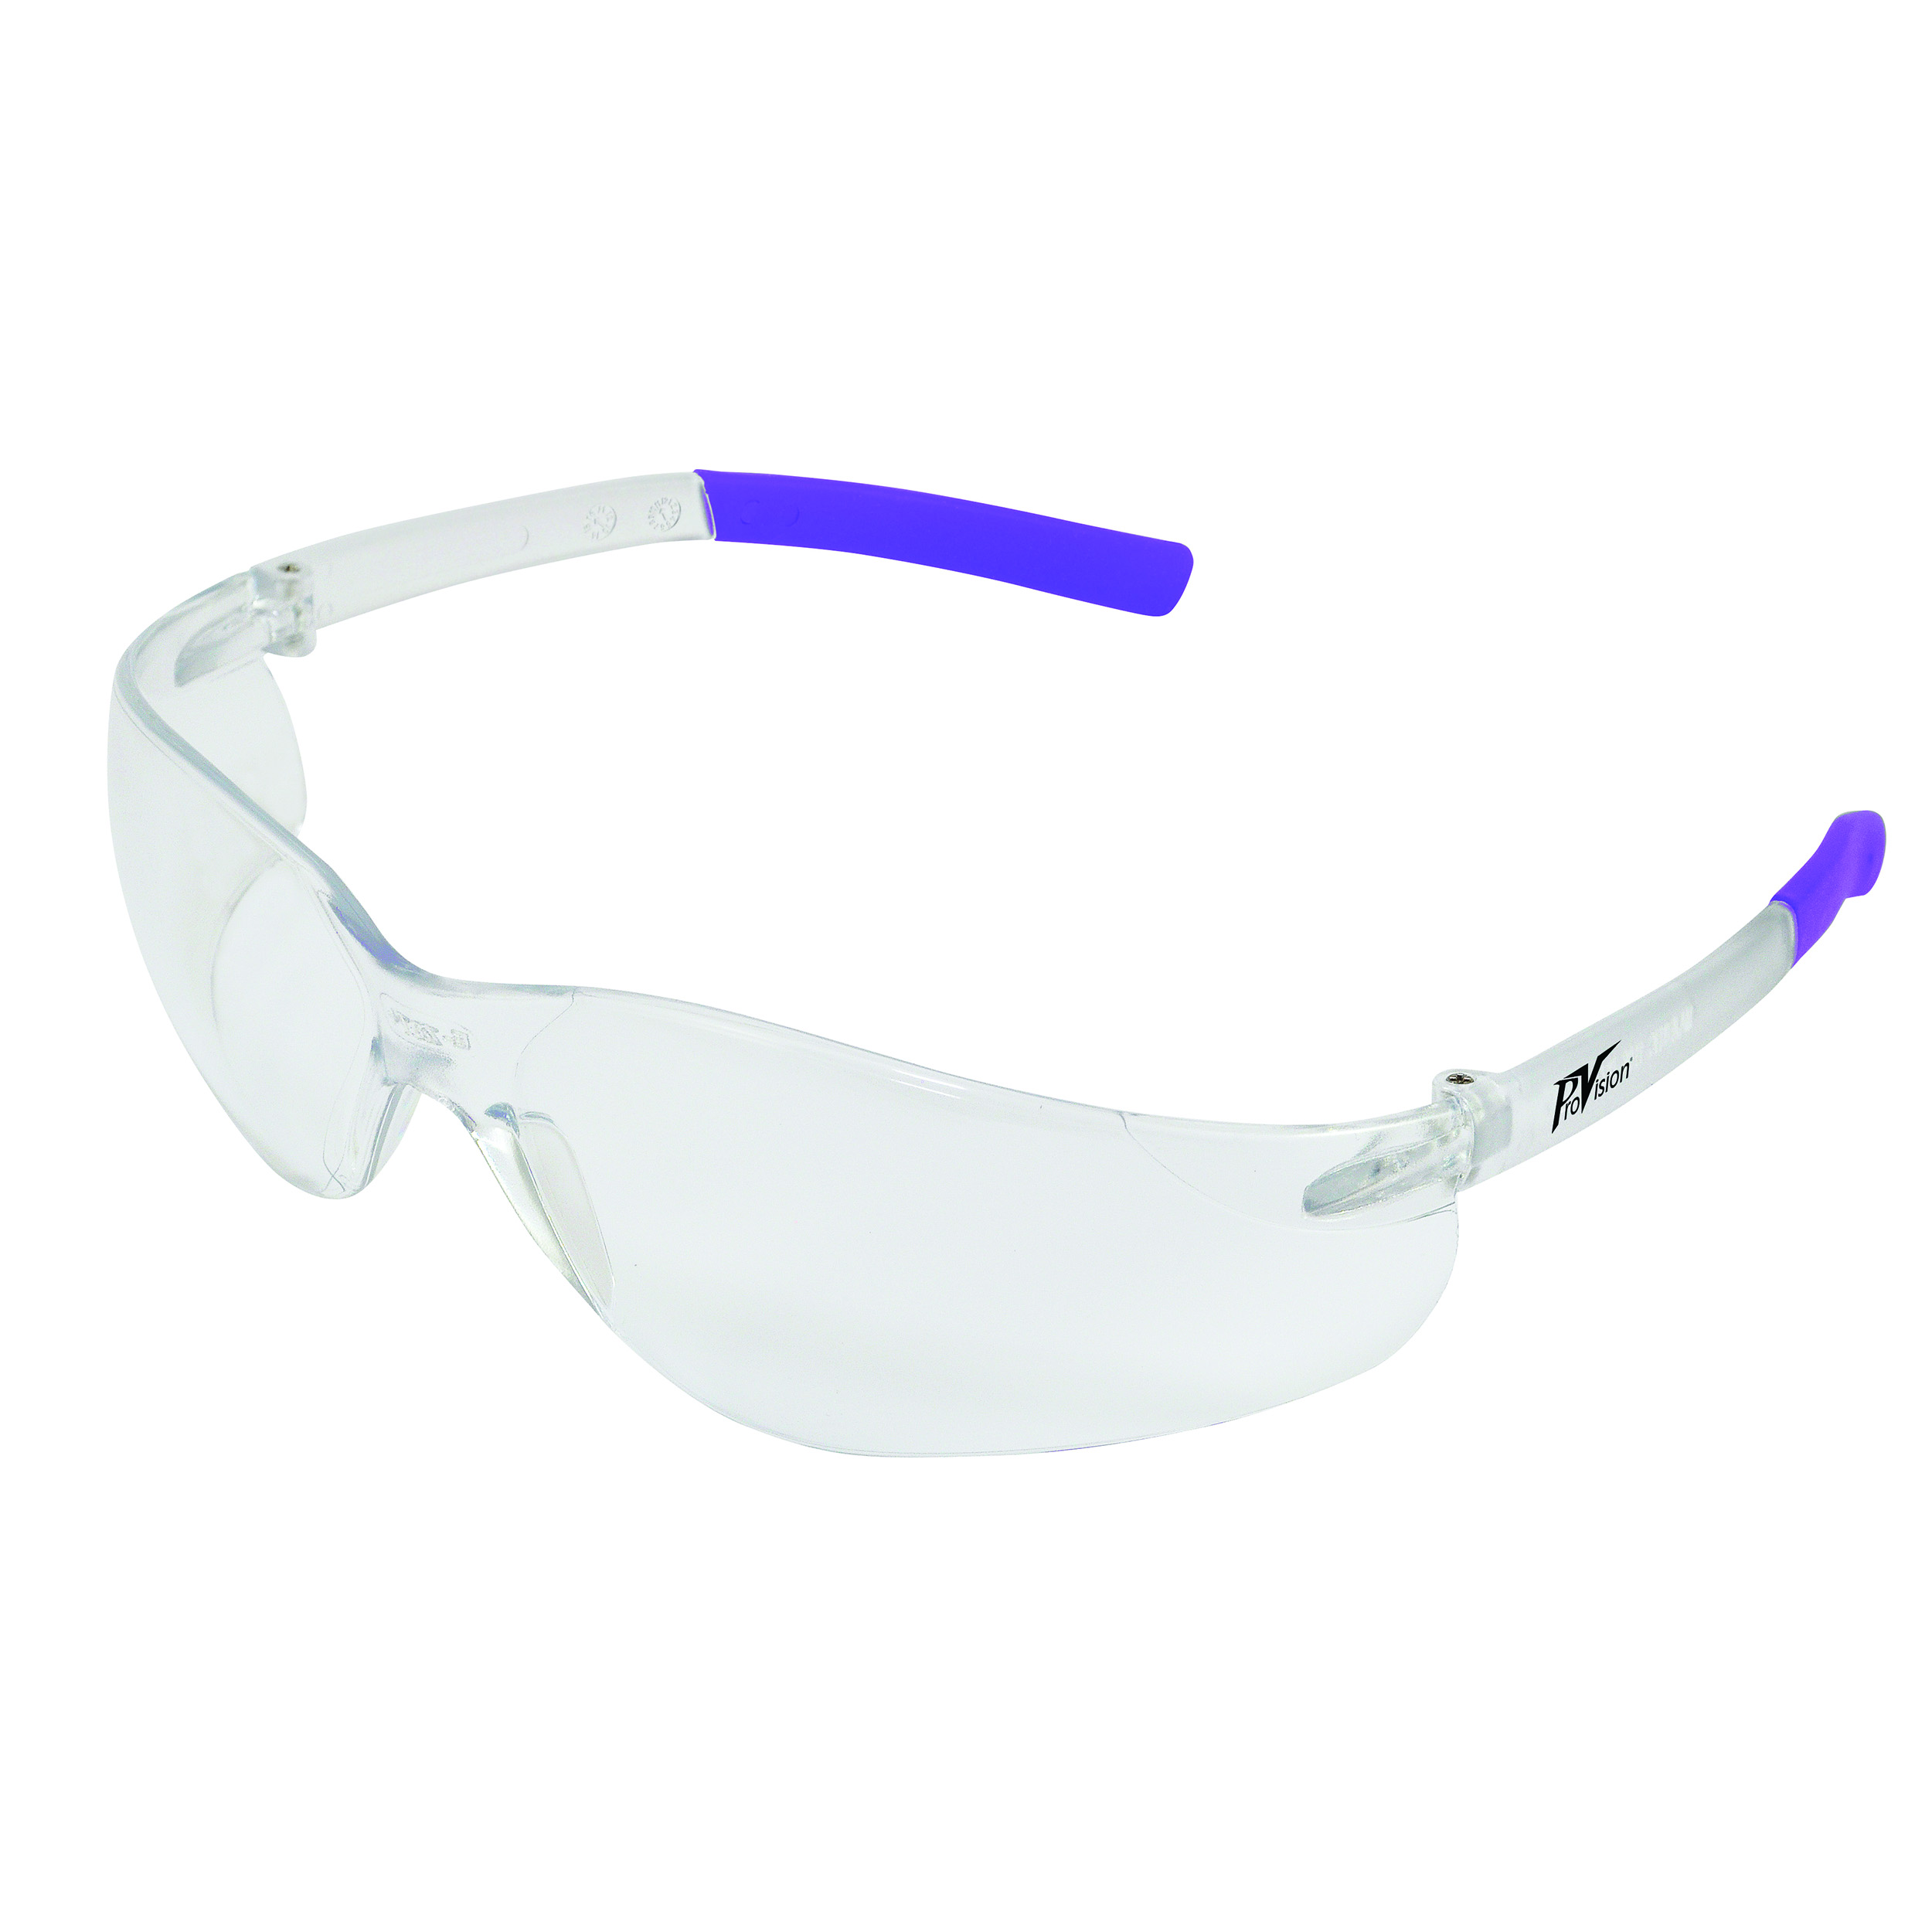 9200117 ProVision Clarity Eyewear Lavender Frame, Clear Lens, 3605L